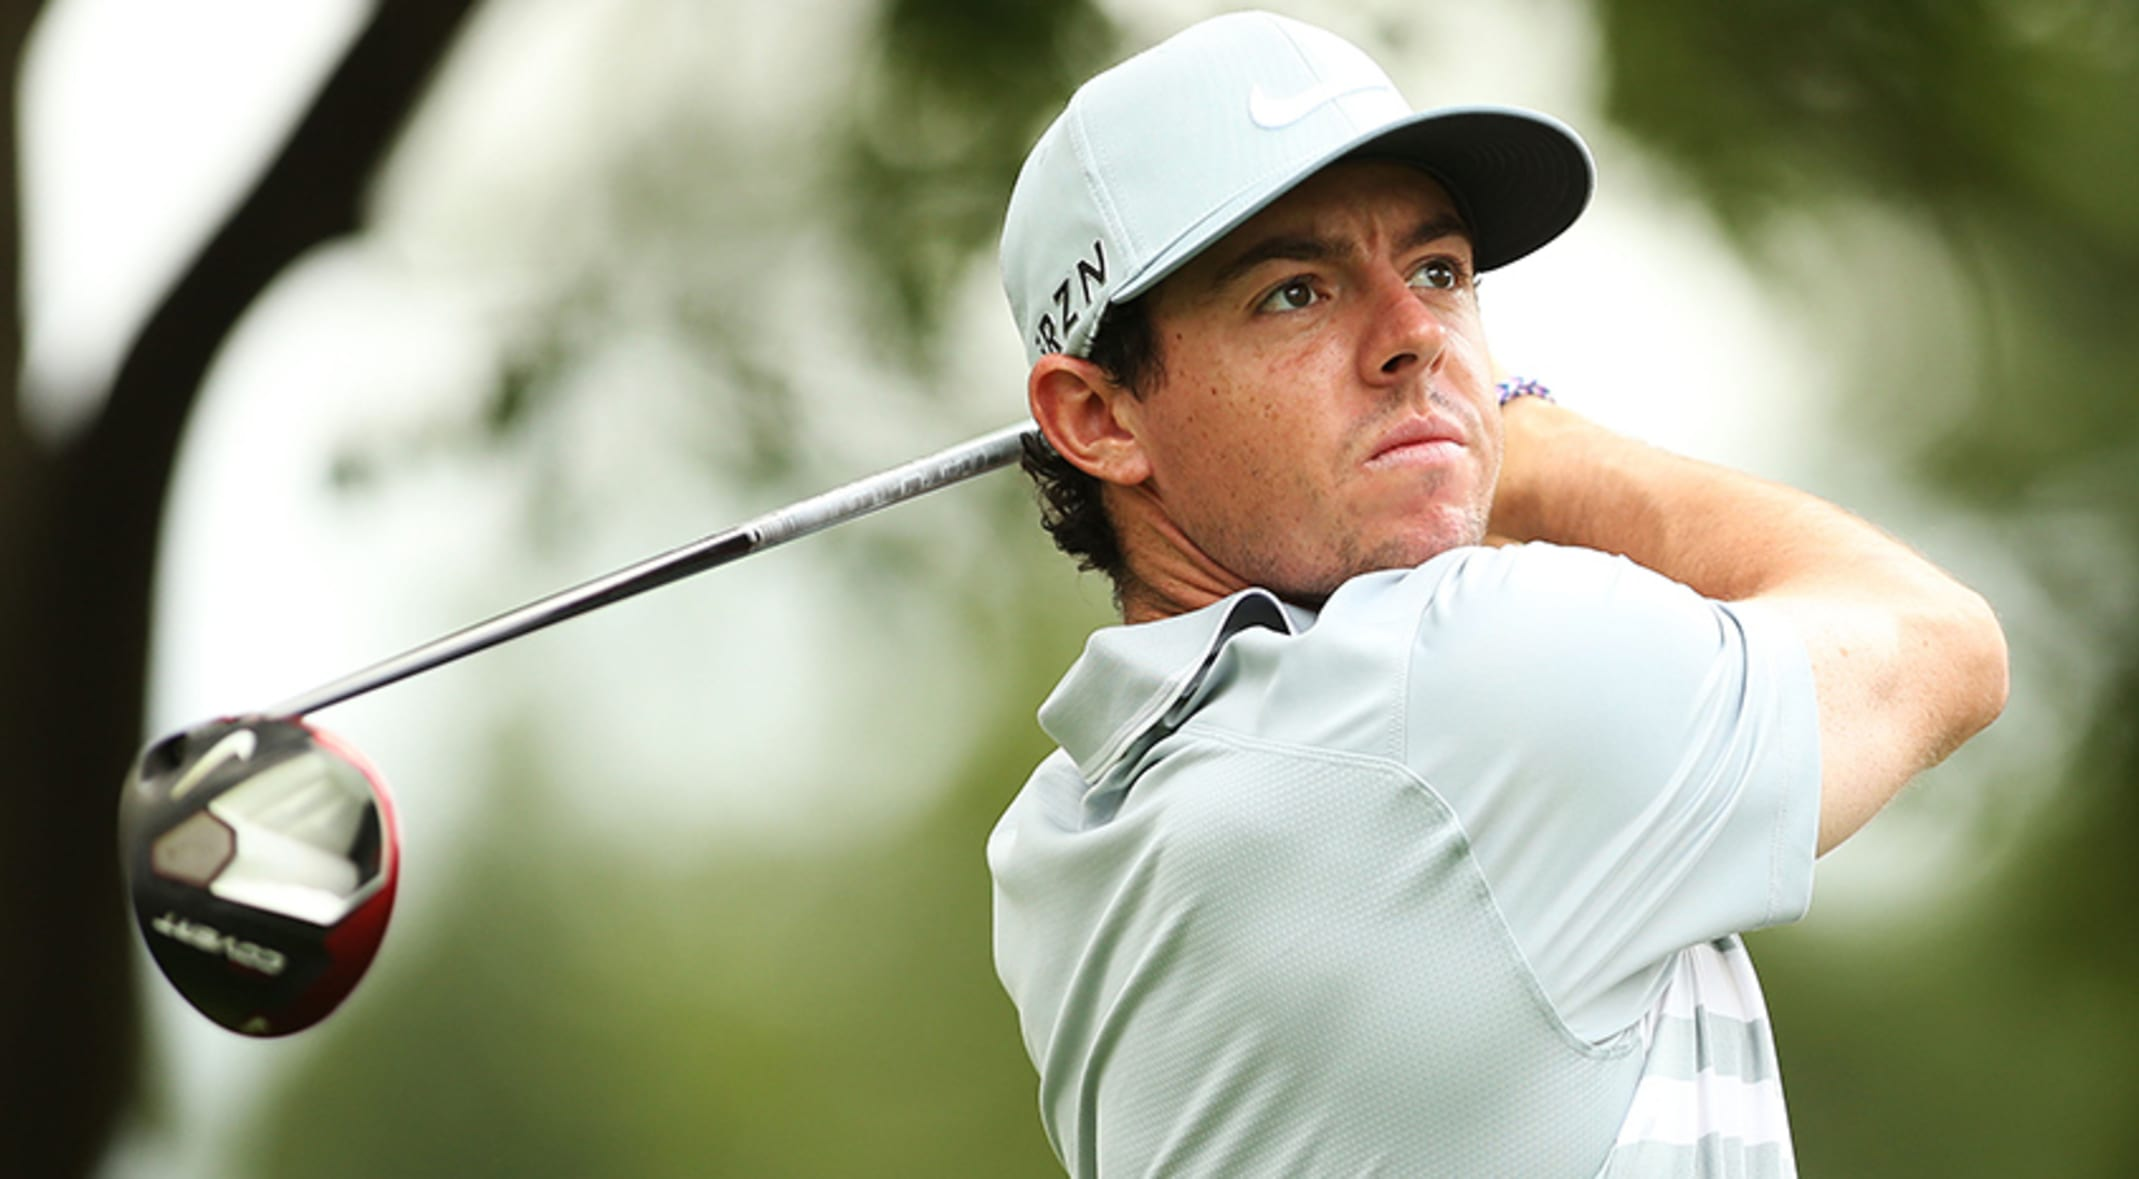 Rory McIlroy gained a TOUR-leading 2.8 strokes per round on the field during 2013